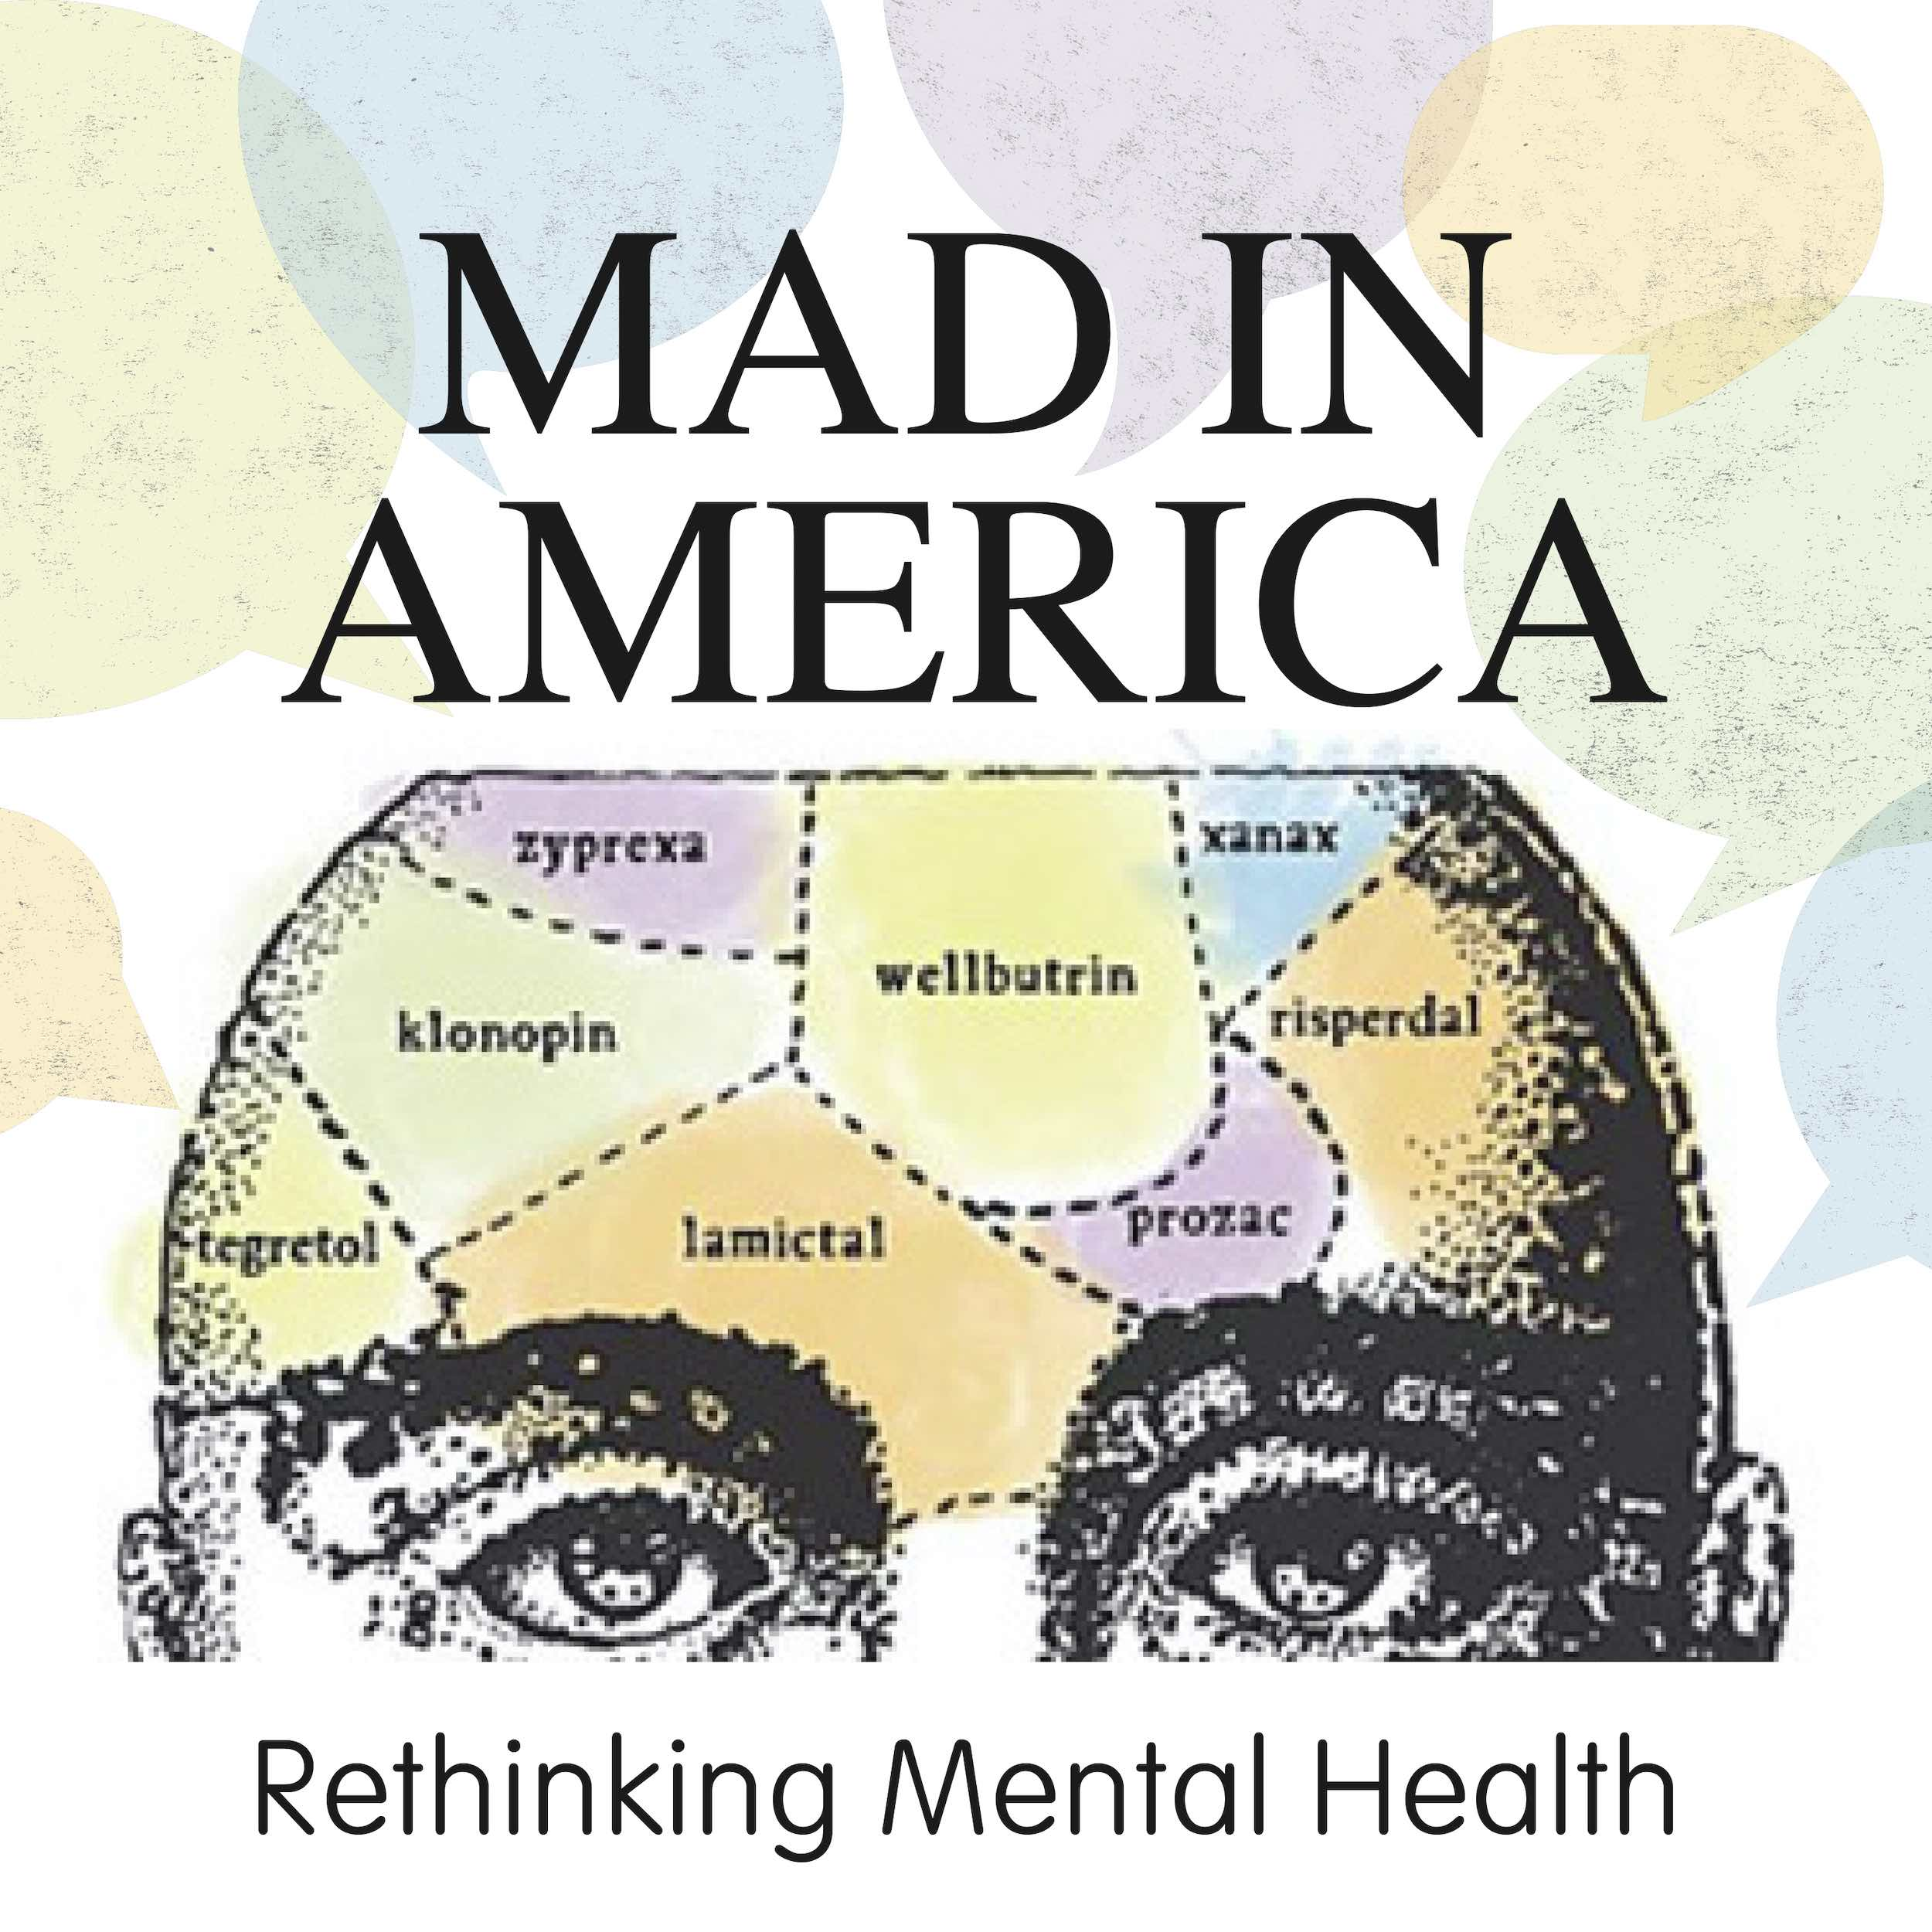 Mad in America: Rethinking Mental Health - Jennifer White - Rethinking Suicide Prevention